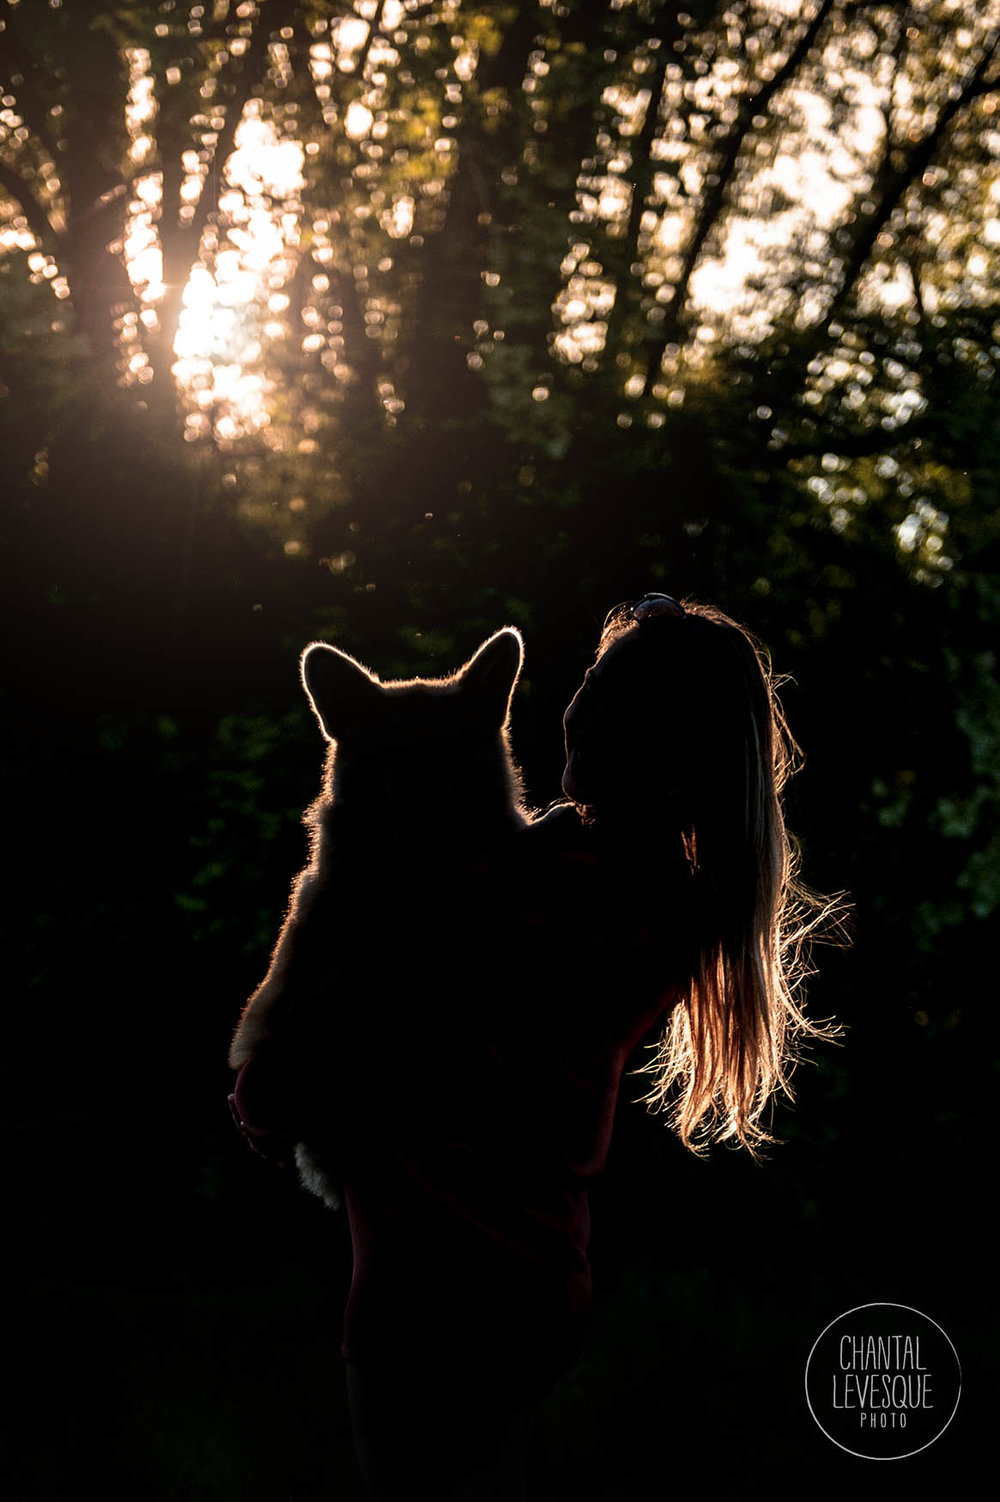 corgi-sunset-photography-quebec.jpg